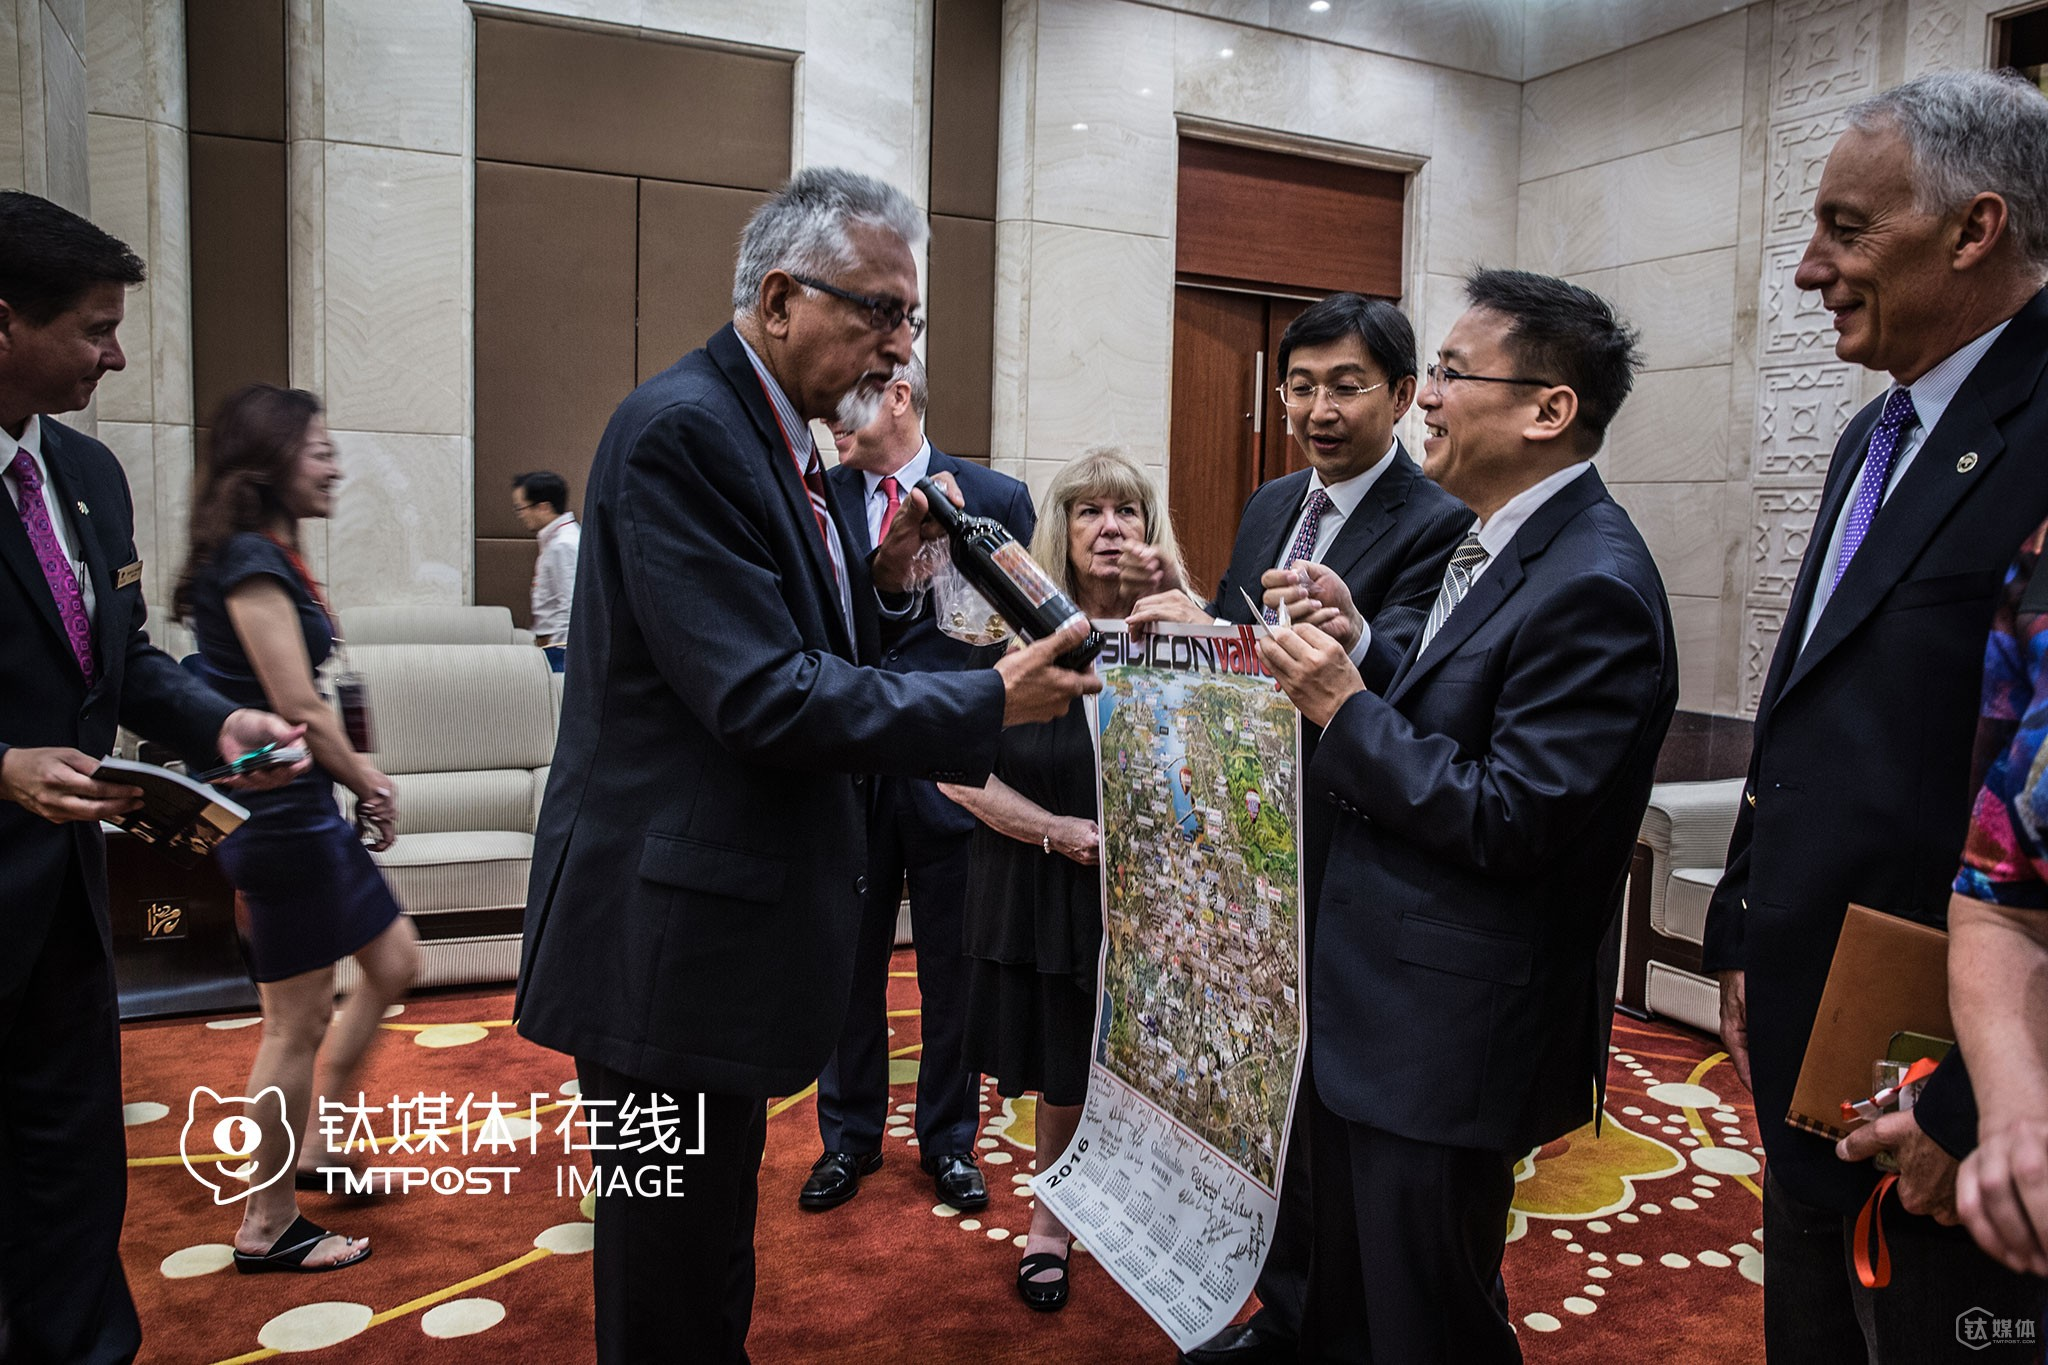 "Before the VR summit in Chongqing began, Mu Huaping, District party secetary of Yubei District, met with the delegation. After the meeting, Silicon Valley mayors gave some gifts to Mr. Mu, including city emblems, souvenirs, red wine, etc. A day before the meeting, a Silicon Valley mayor asked the interpreter: ""Does party secretaries have more power than mayors and vice mayors in China?"" He'd met party secretaries of some local Chinese government on study tours in the US, but wasn't quite sure of how power was divided in the Chinese political system."